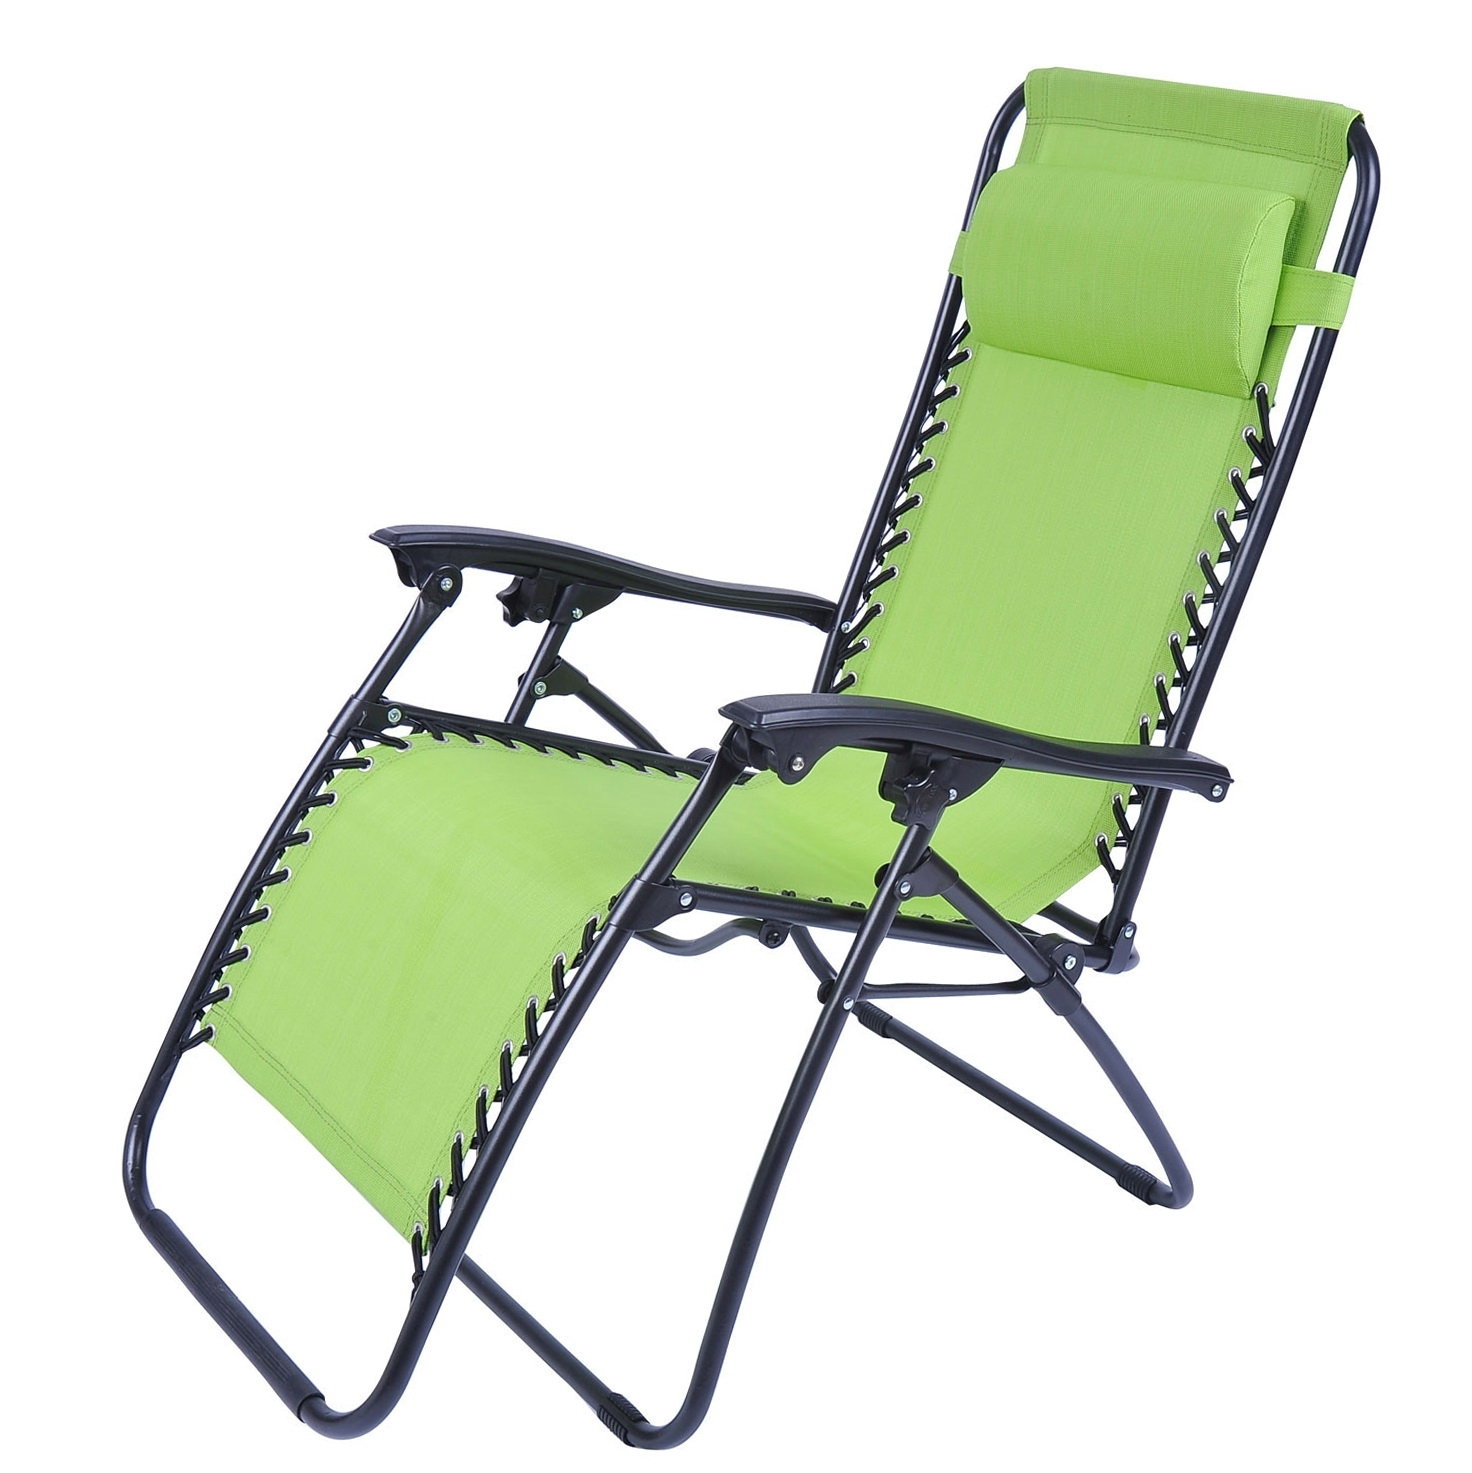 Chaise Lounge Folding Chairs With Best And Newest Folding Chaise Lounge Chair Patio Outdoor Pool Beach Lawn Recliner (View 4 of 15)